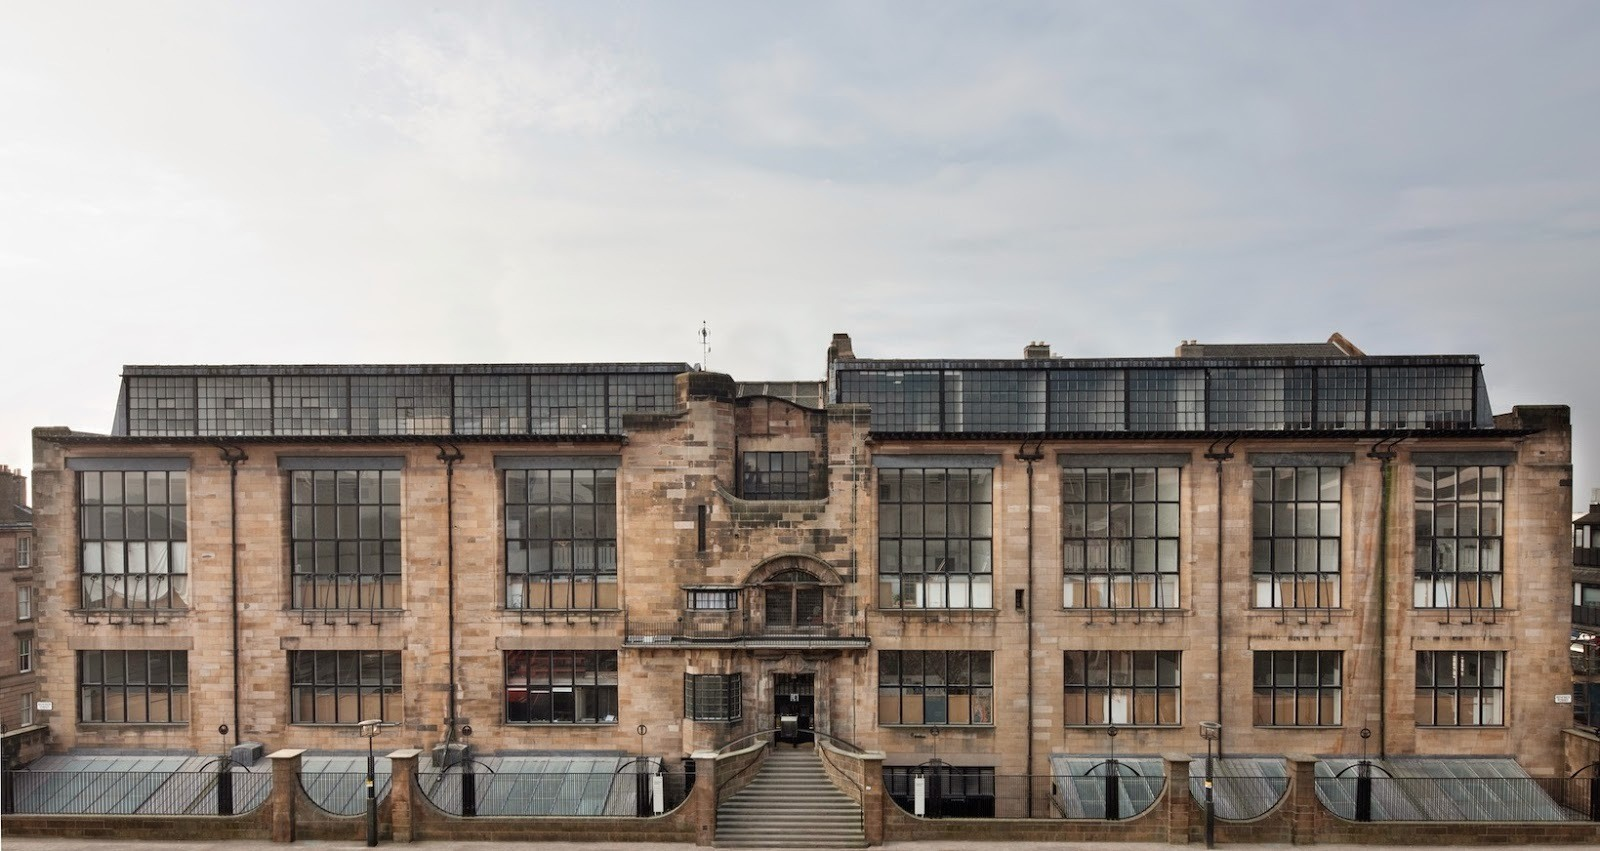 Page\Park Wins Competition to Rebuild Mackintosh's Glasgow School of Art, Glasgow School of Art (before the fire). Image © Alan McAteer